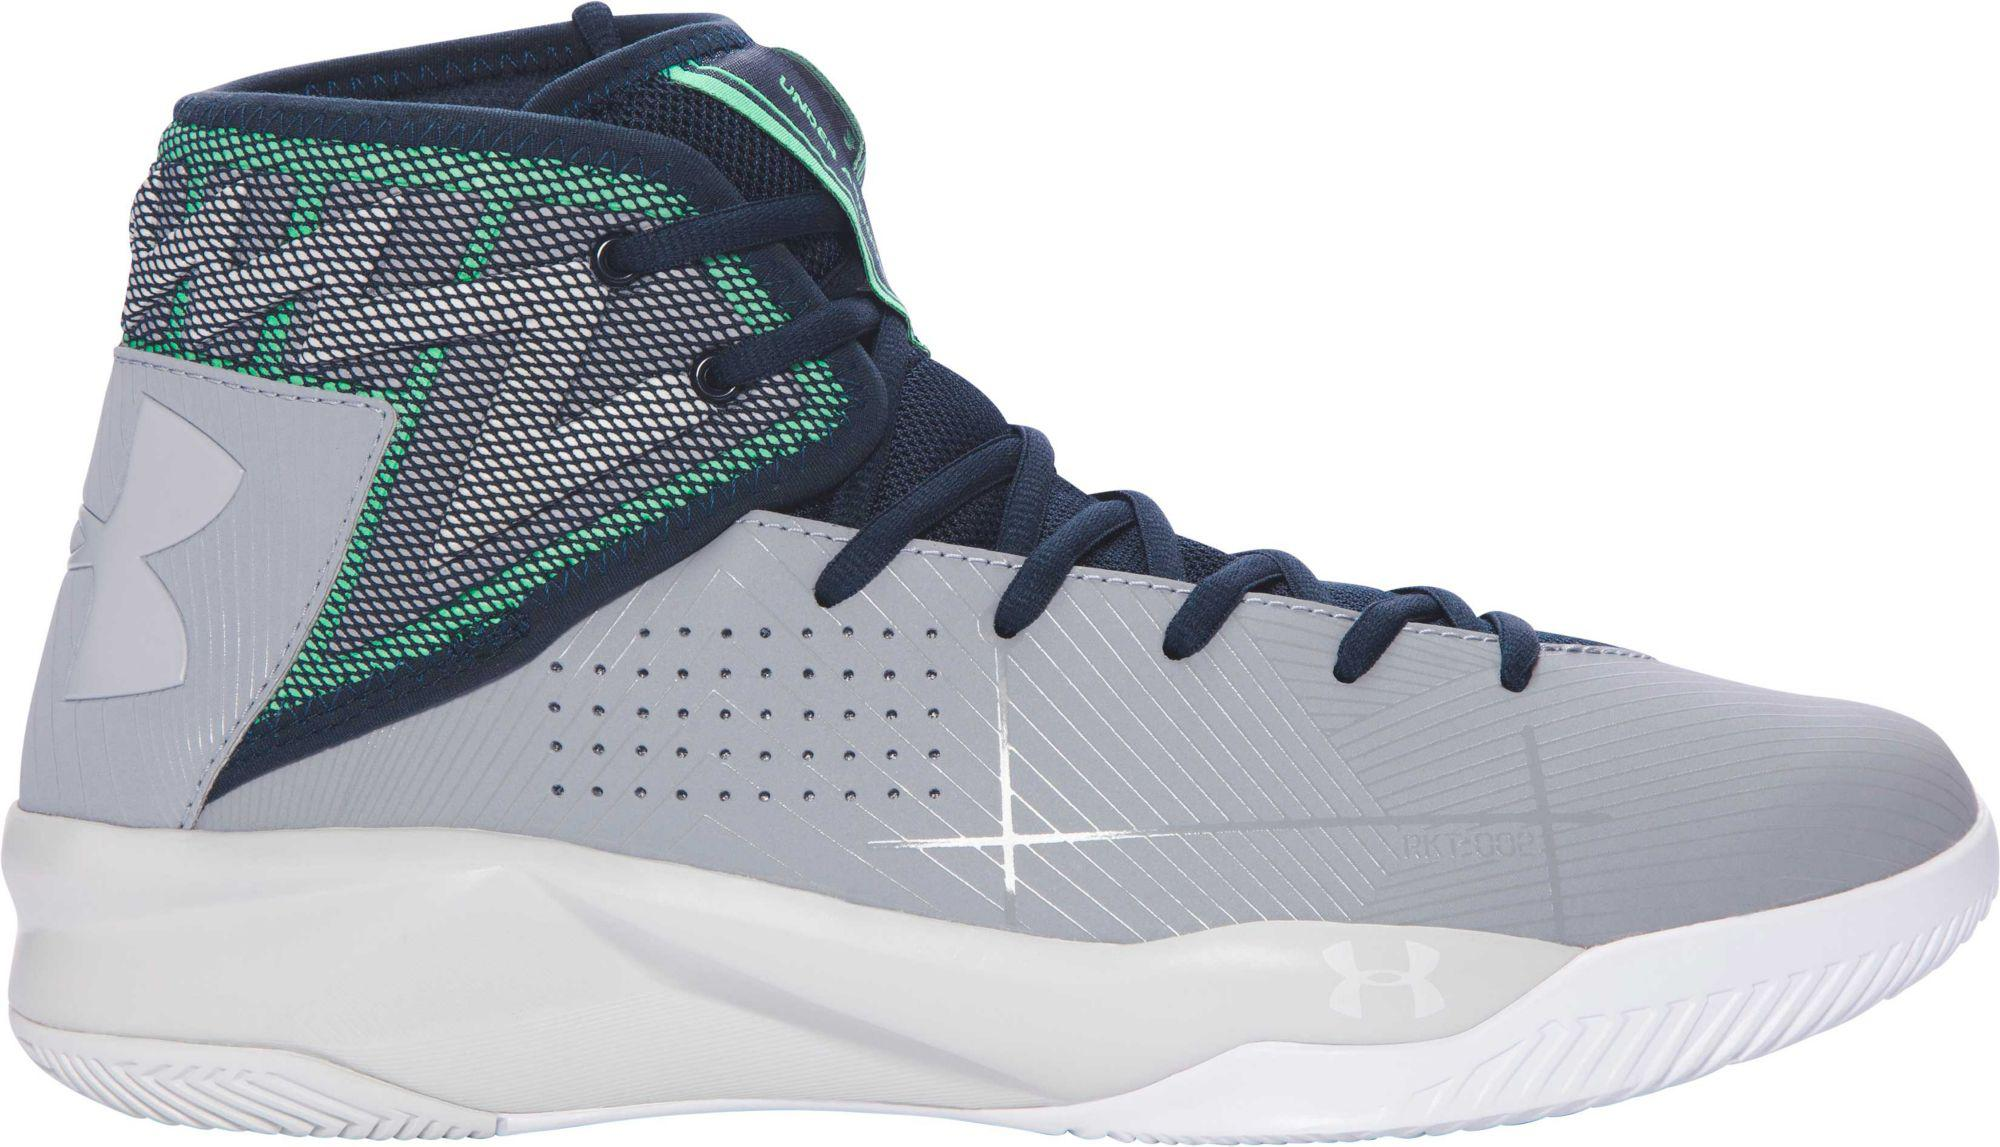 cb908135f694 Lyst - Under Armour Rocket 2 Basketball Shoes in Gray for Men